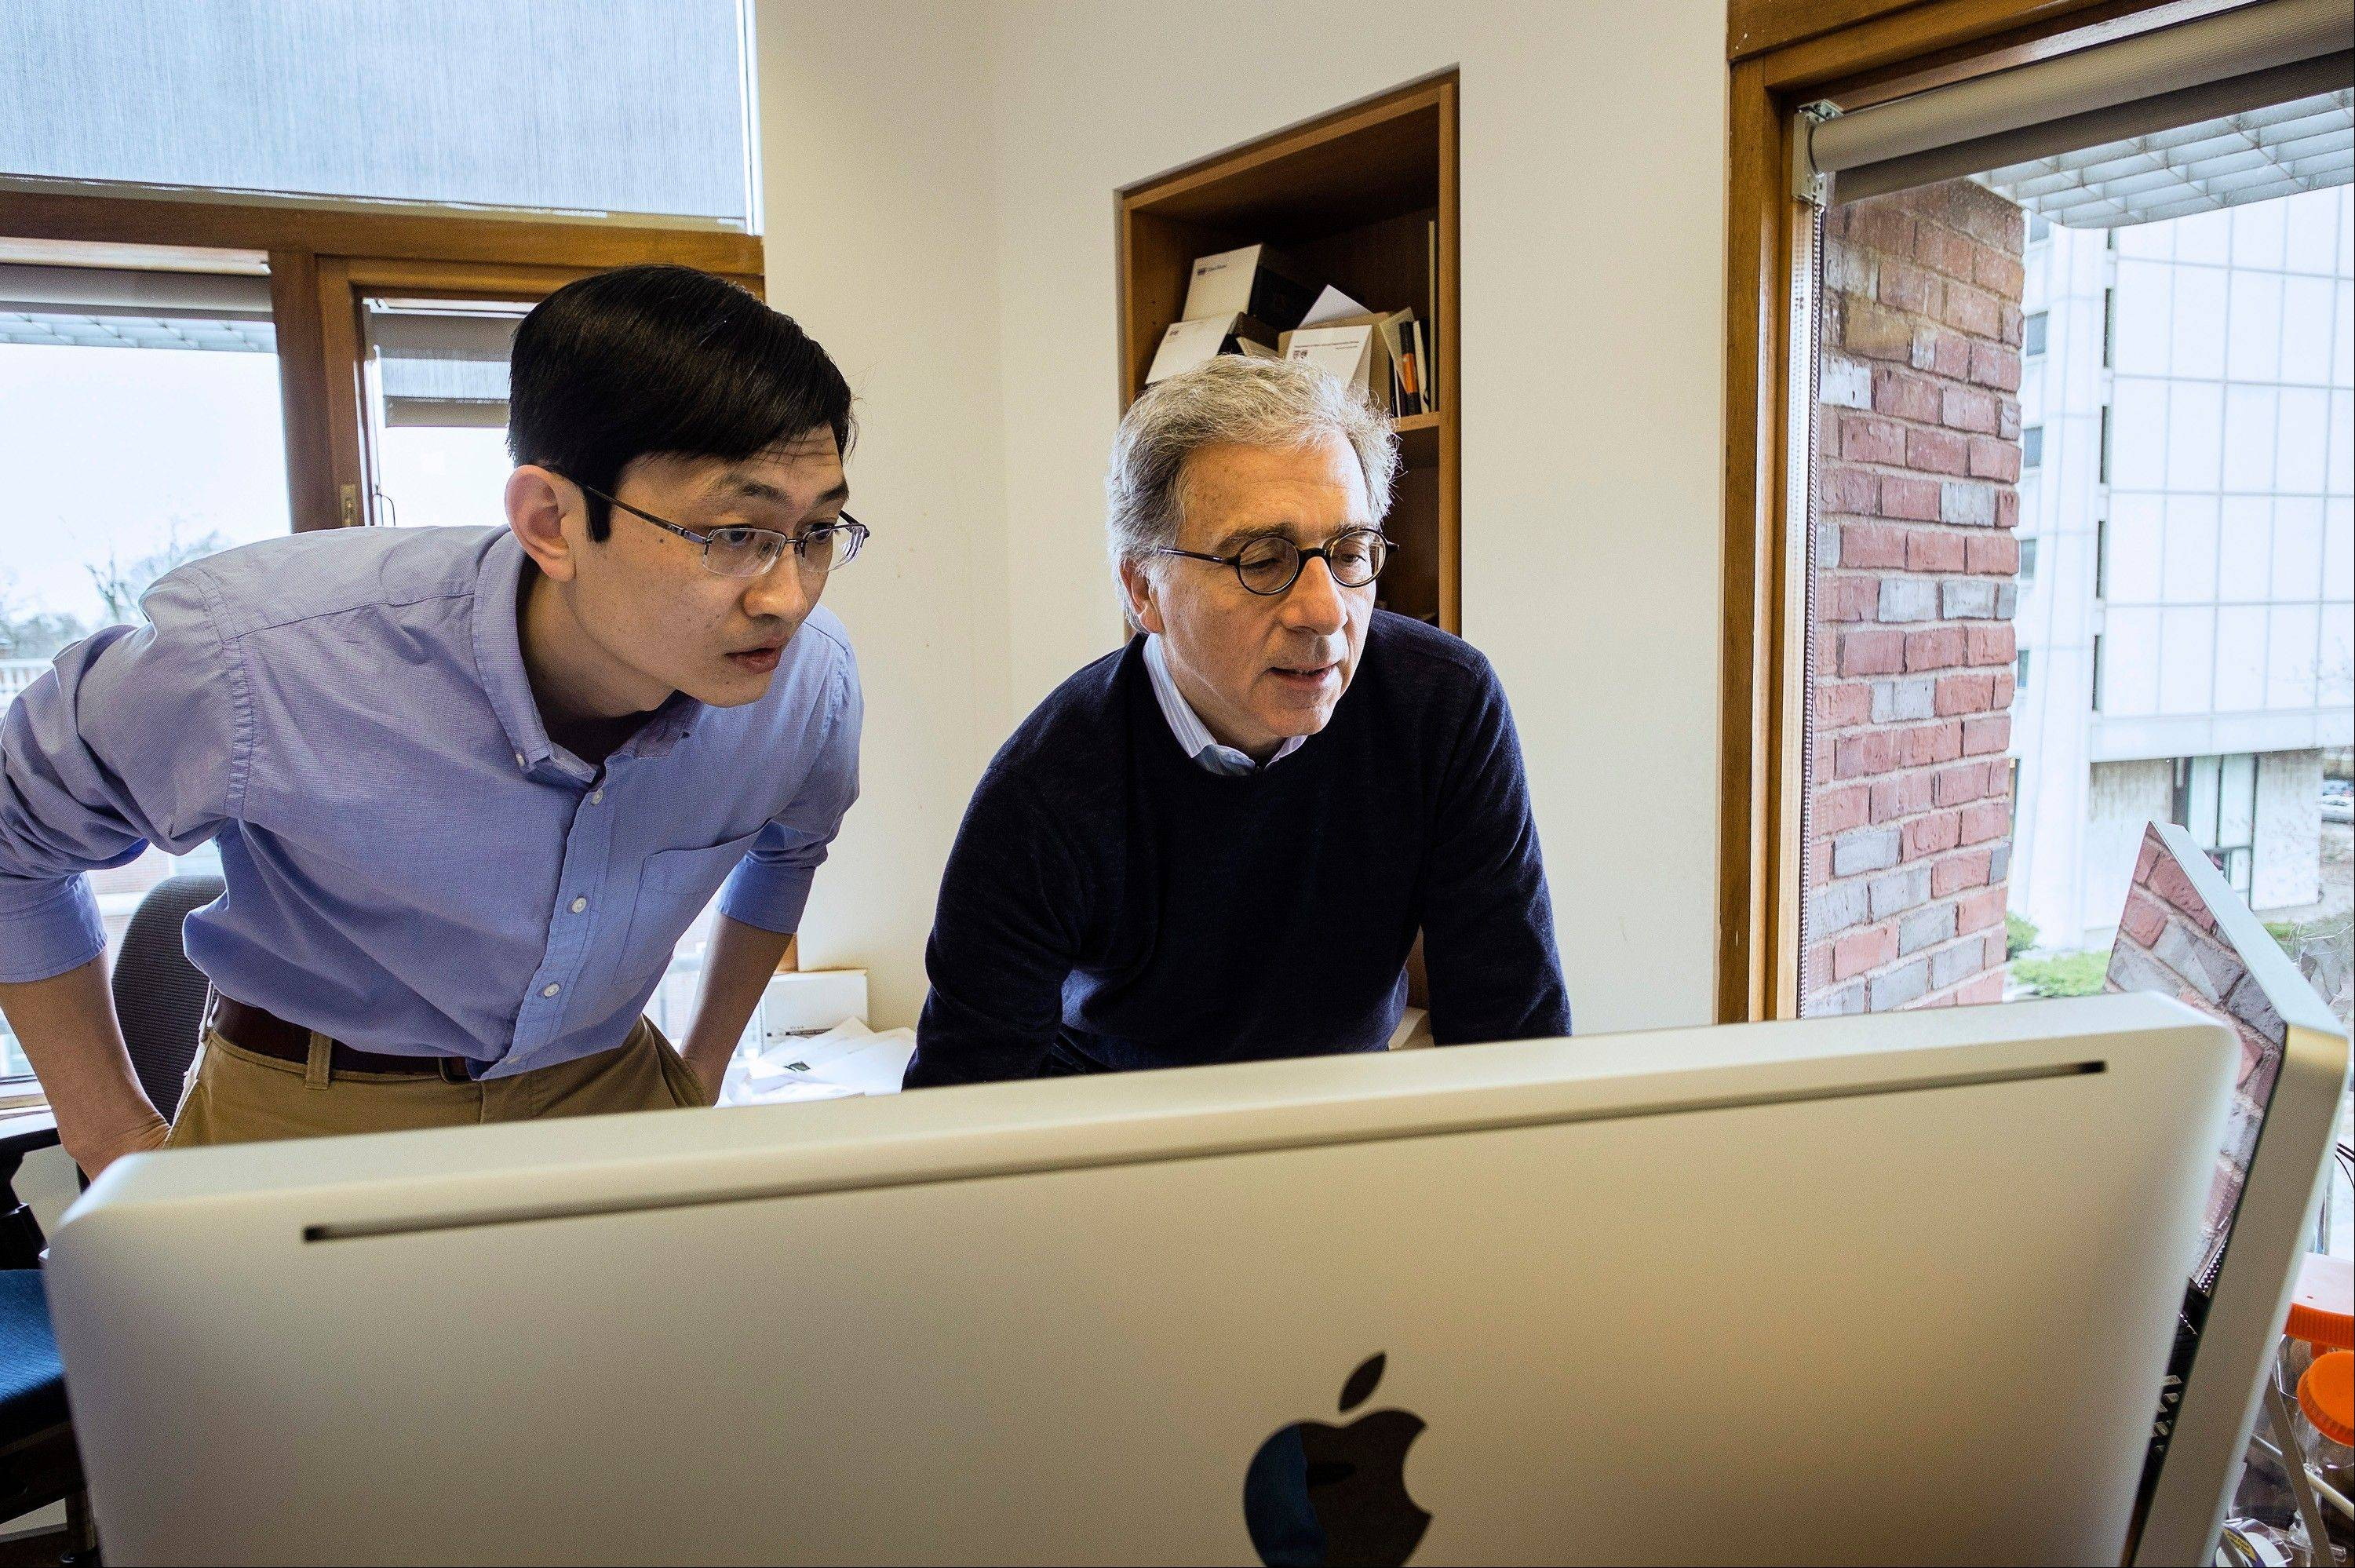 Harvard Stem Cell Institute Co-Director Doug Melton, right, and Peng Yi, a post doctoral fellow in his lab, review data from recent experiments in Melton�s lab in Cambridge, Mass.